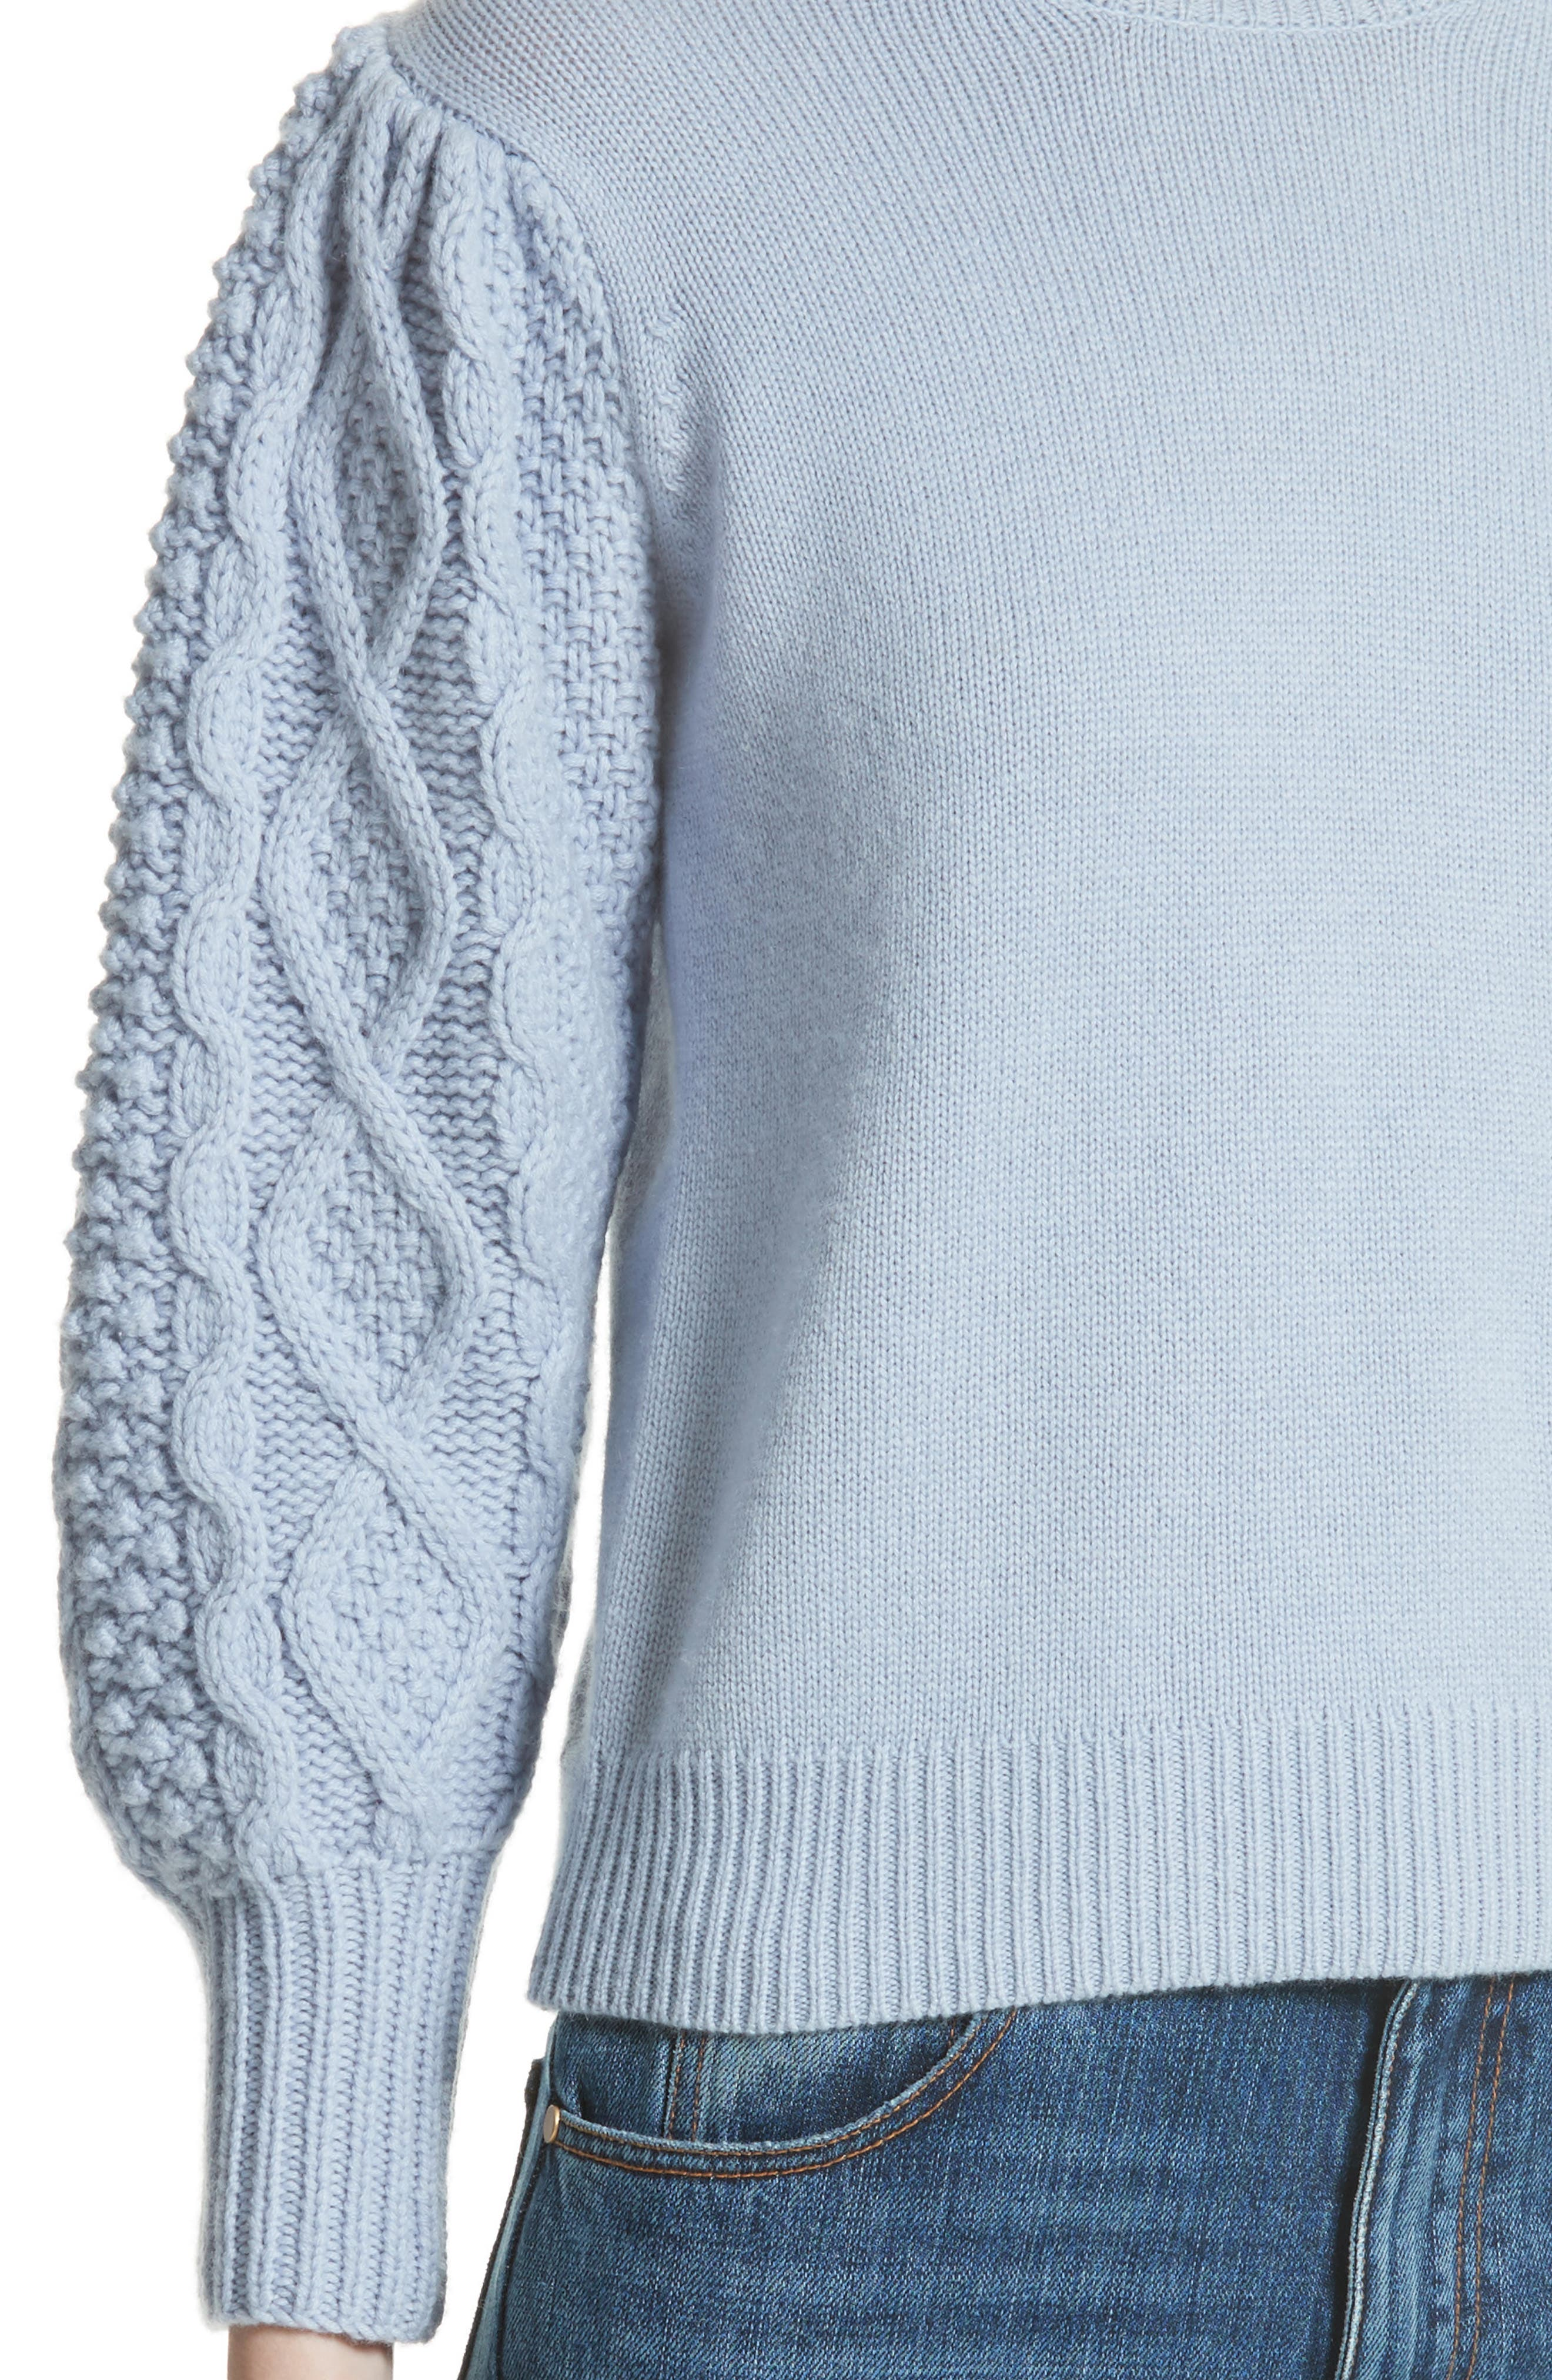 Puff Sleeve Wool & Cashmere Sweater,                             Alternate thumbnail 4, color,                             400